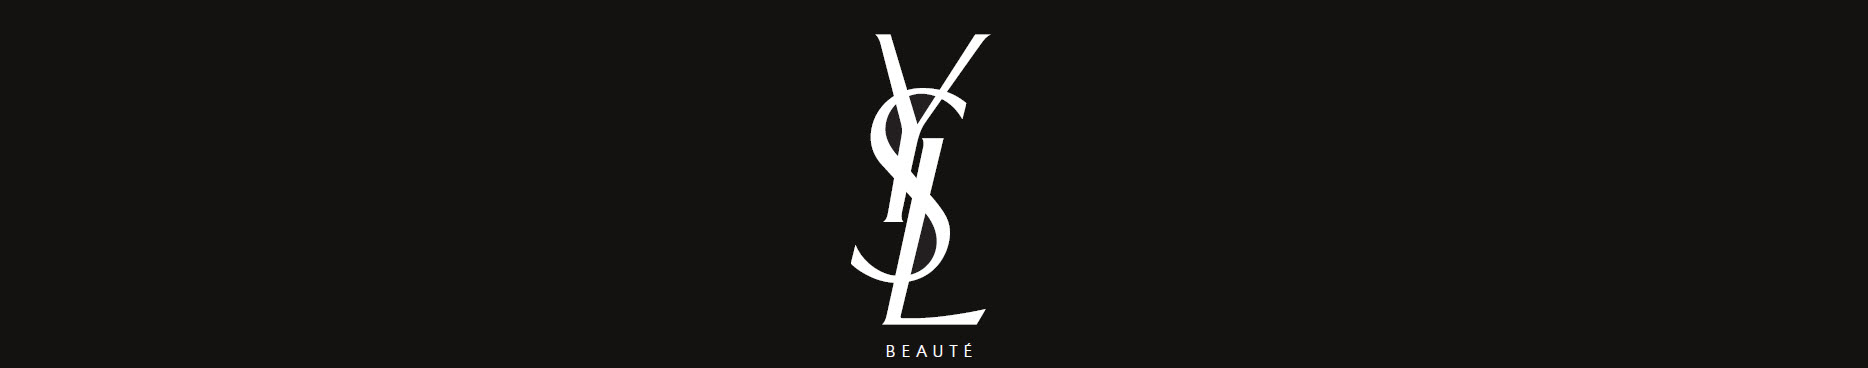 Tickets for YSL Beauty Hotel - New York in New York from ShowClix